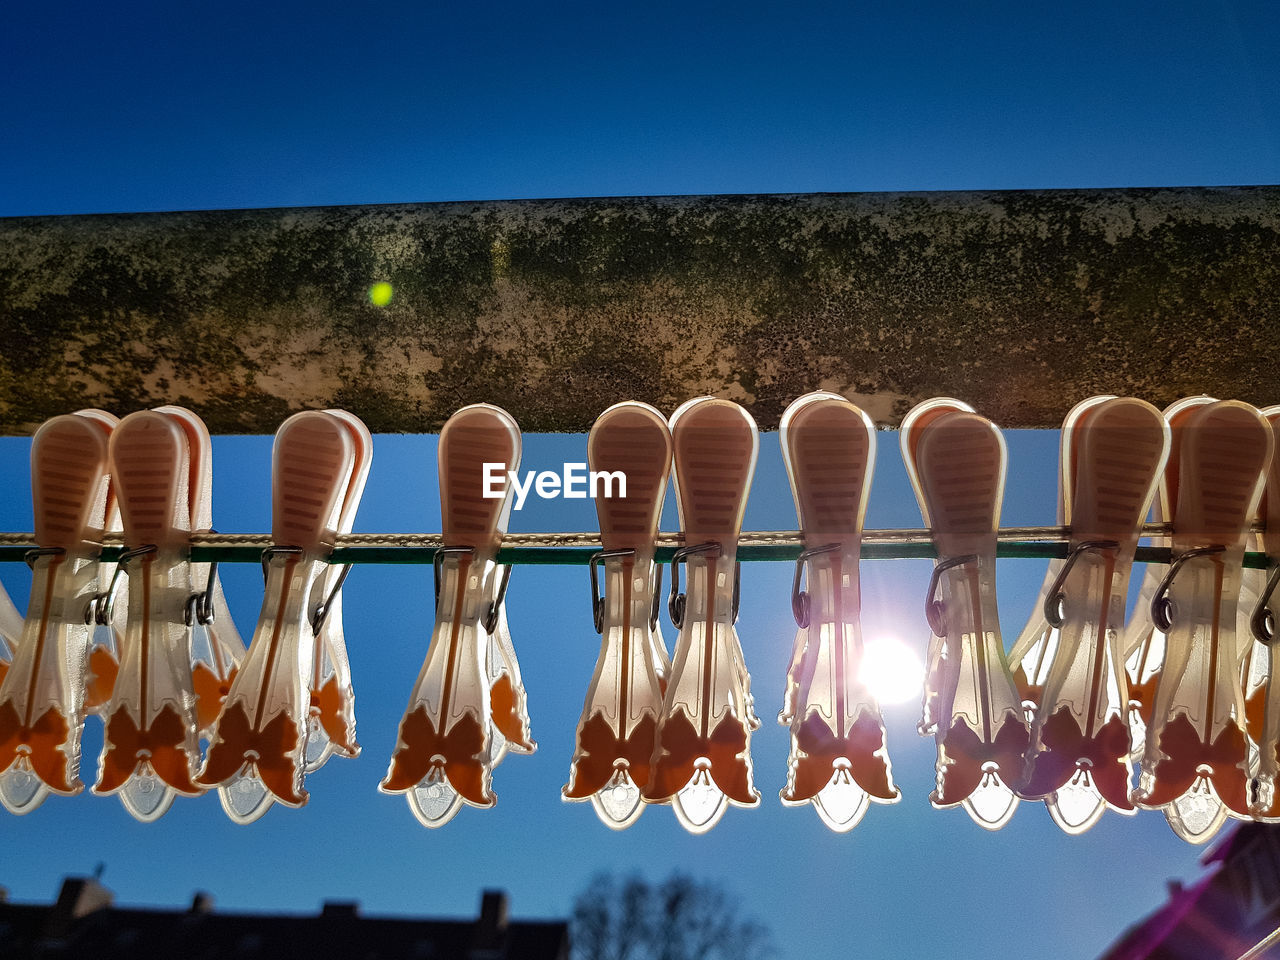 sky, clear sky, hanging, no people, side by side, nature, in a row, day, sunlight, drying, outdoors, low angle view, focus on foreground, string, blue, illuminated, clothesline, tree, clothing, water